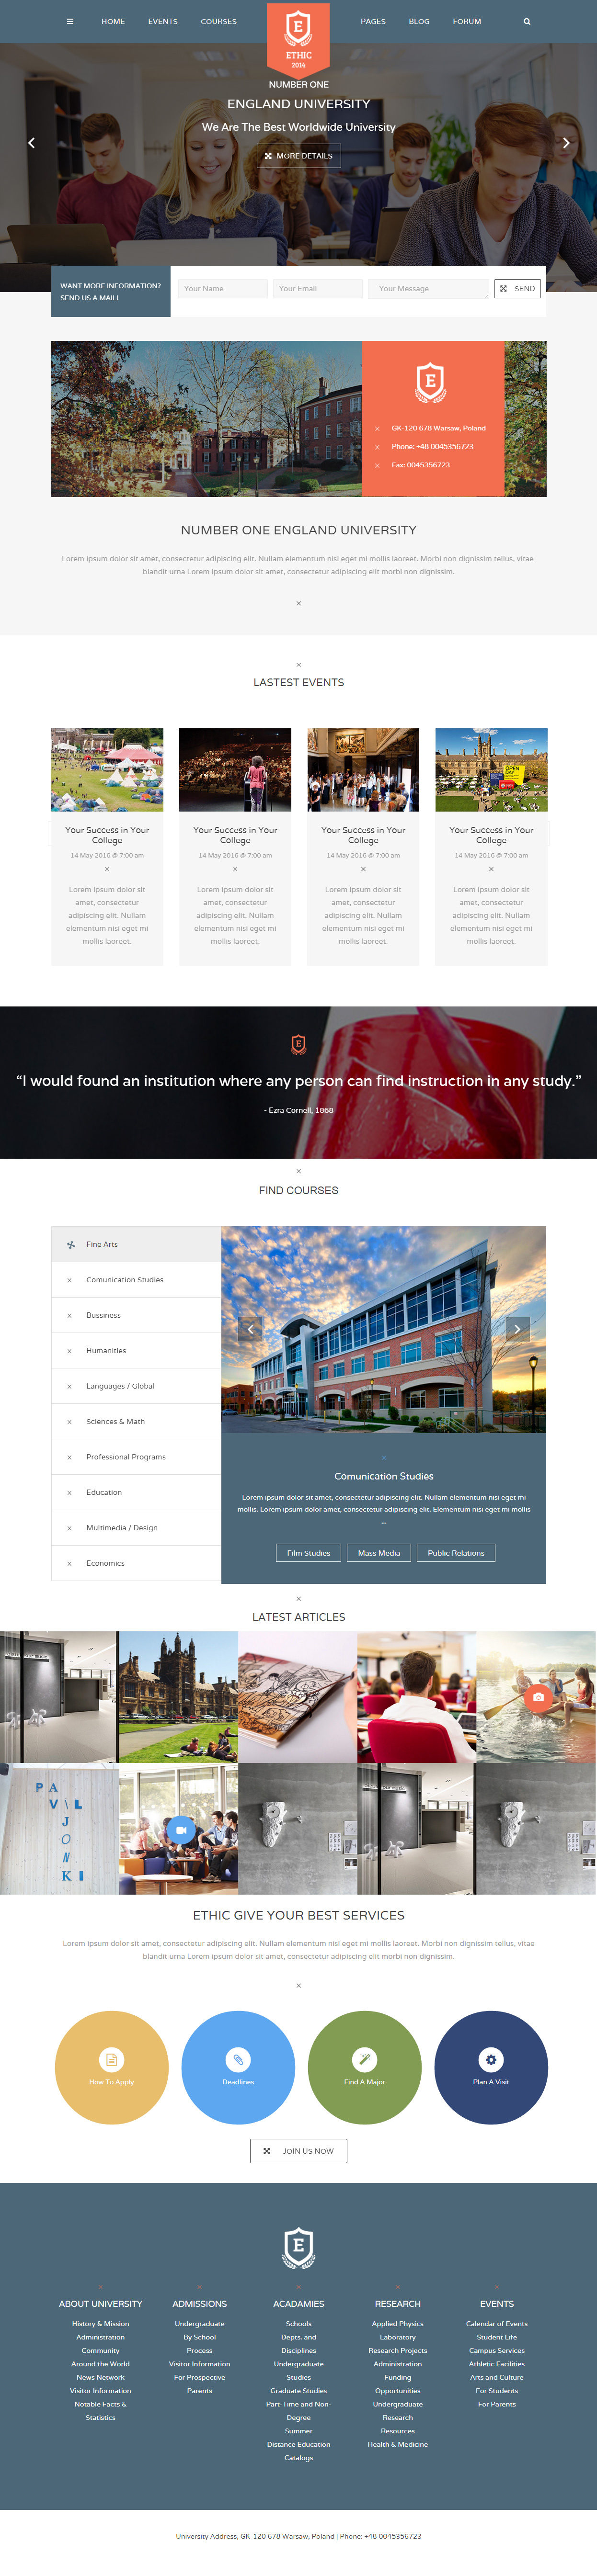 15 Best HTML5 Education Website Templates in 2017 - Responsive Miracle